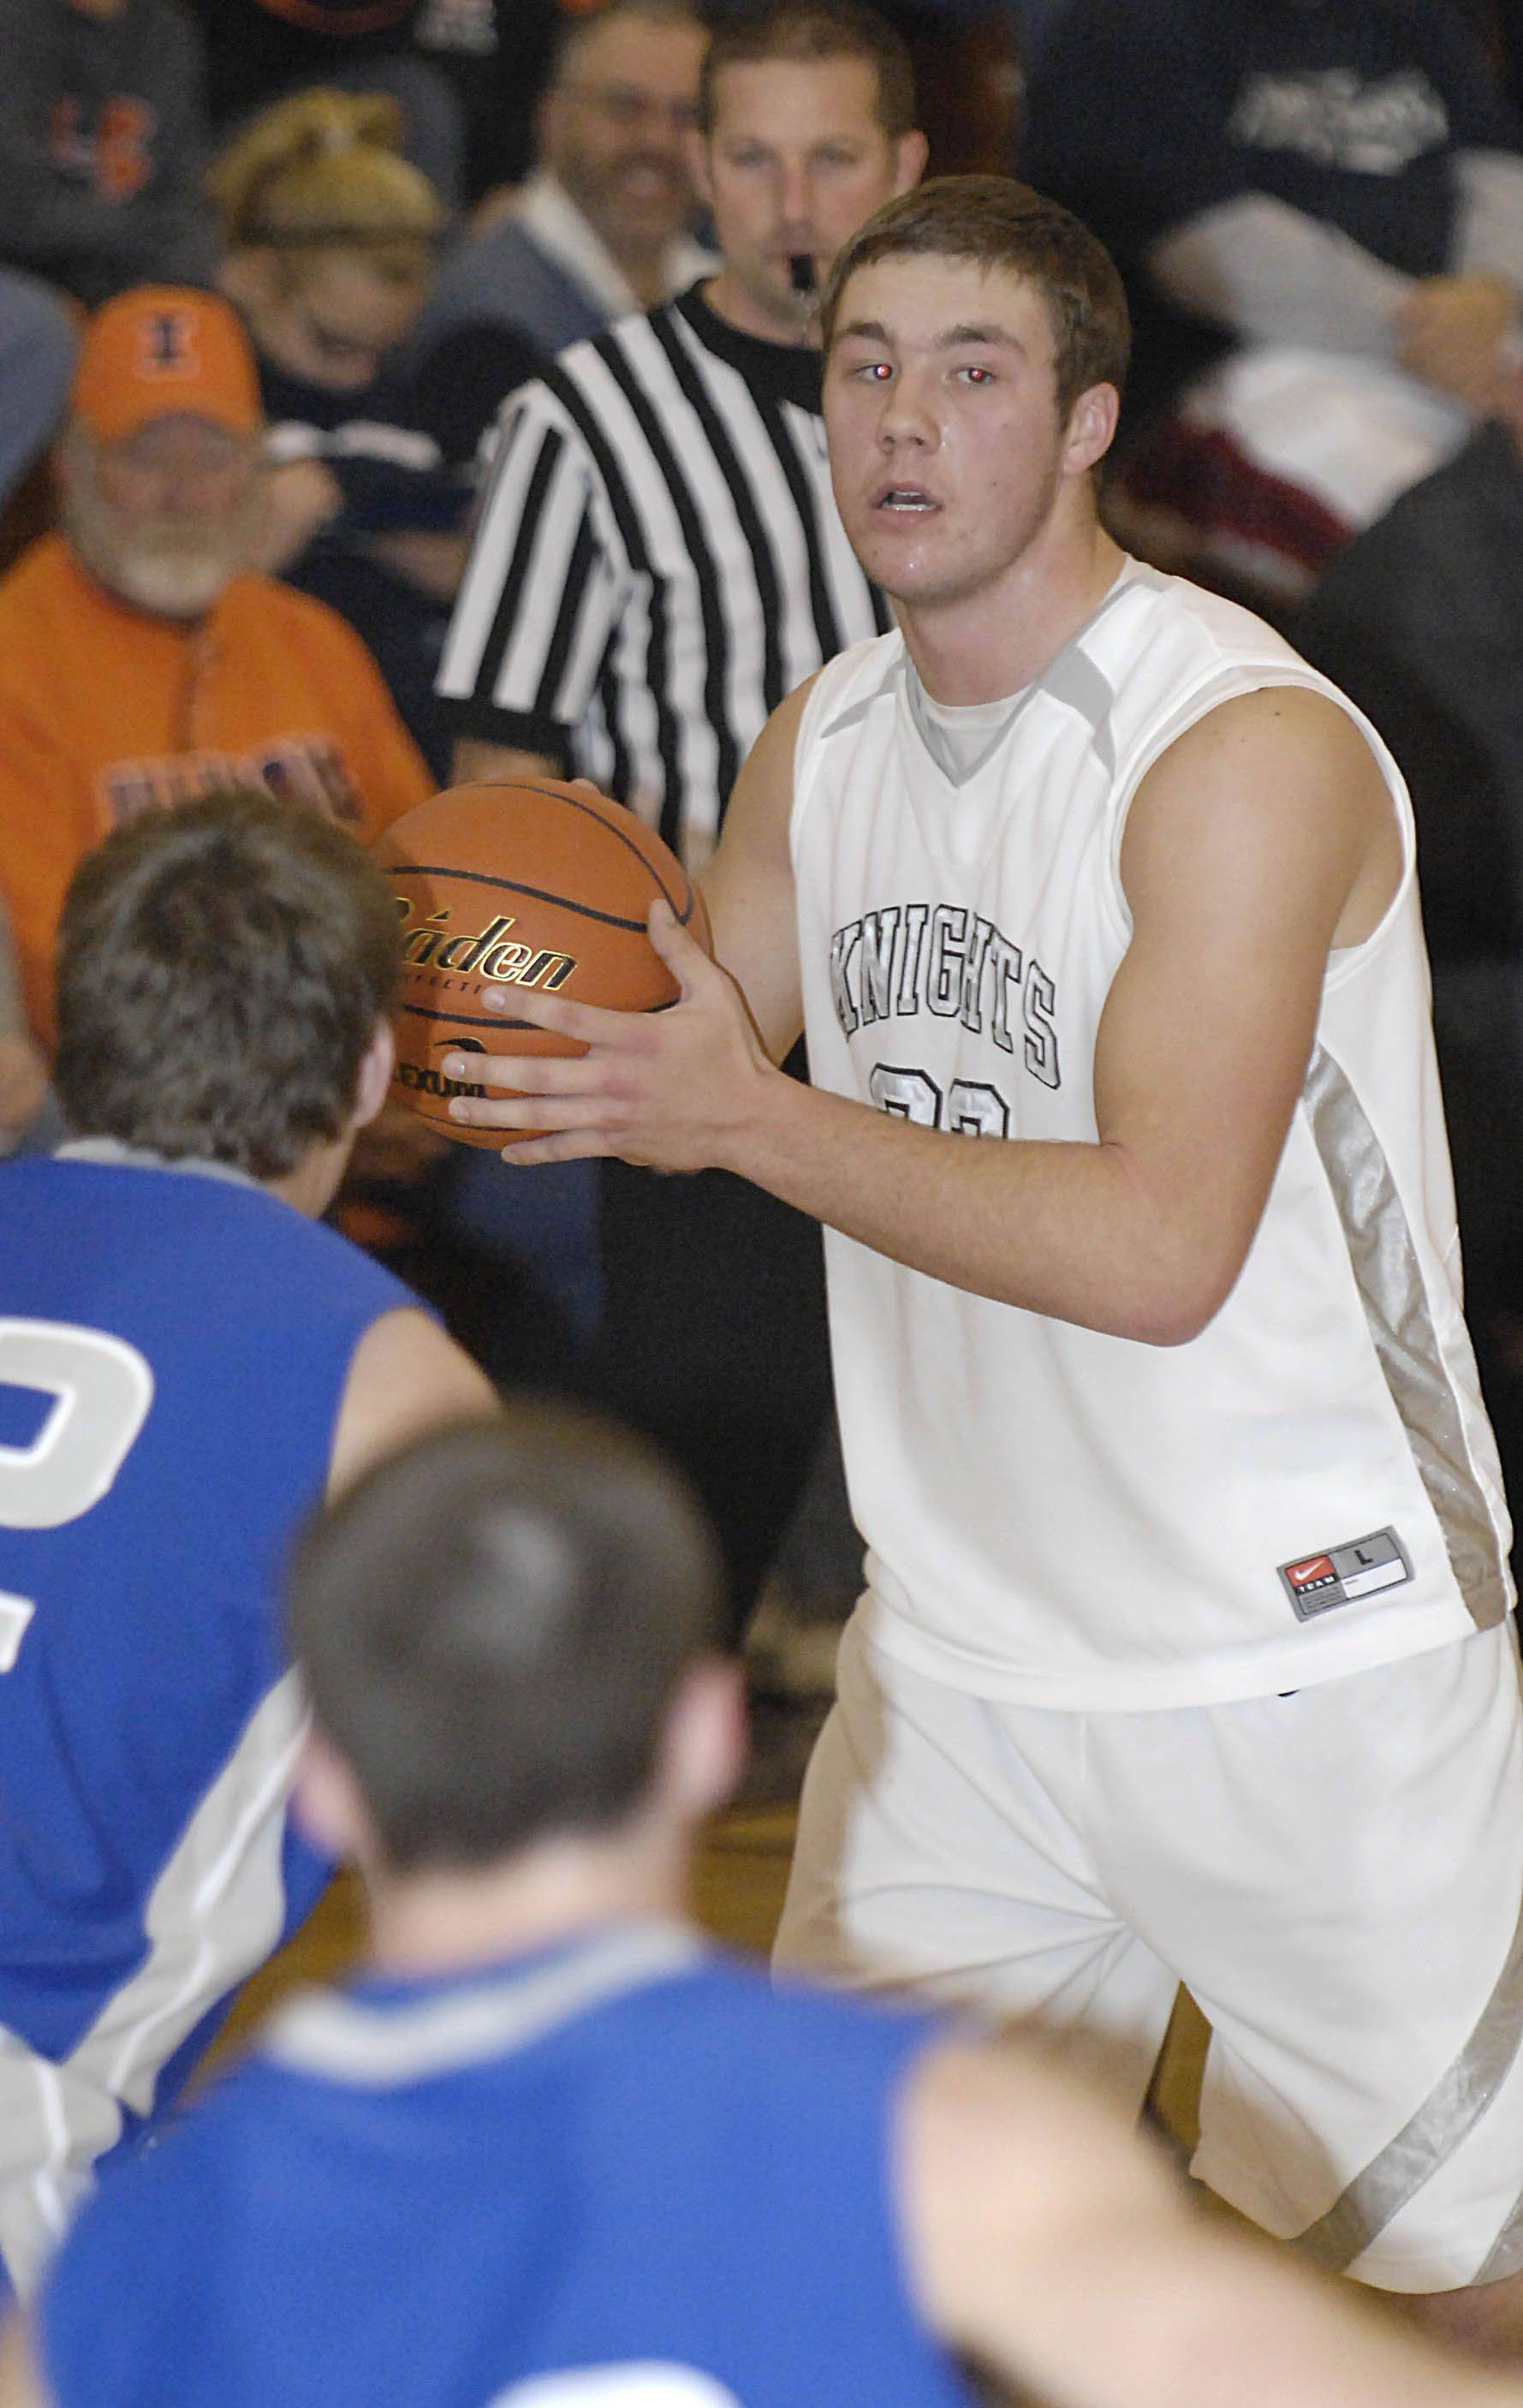 Images from the Kaneland vs. Princeton boys basketball game Tuesday, December 28, 2010.